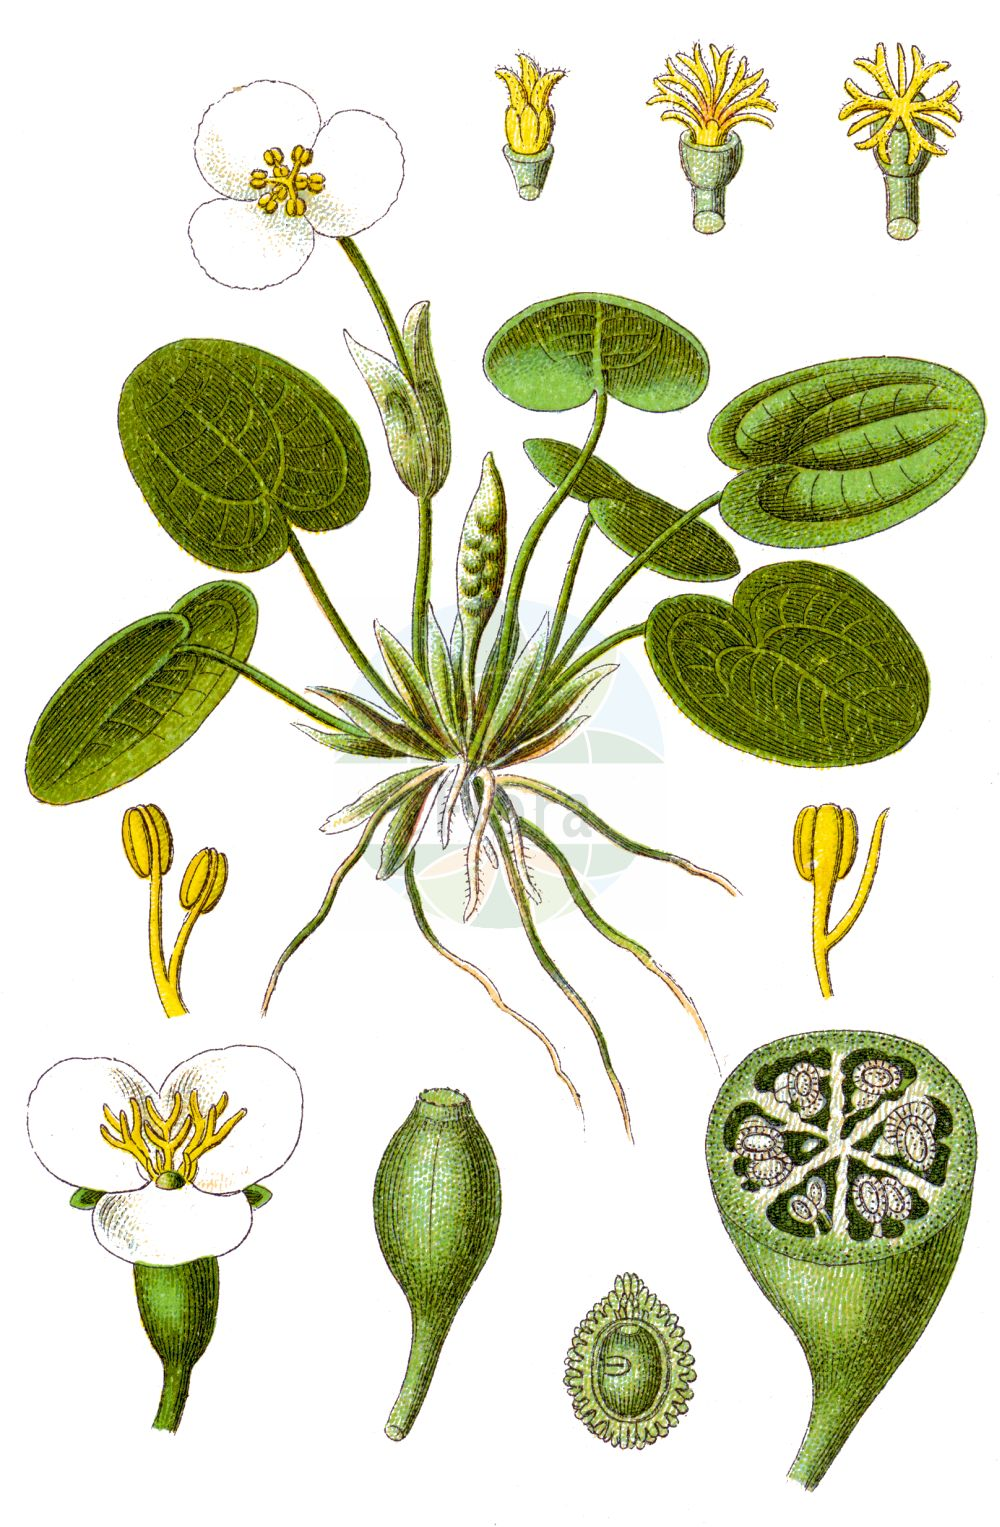 Historische Abbildung von Hydrocharis morsus-ranae (Europaeischer Froschbiss - Frogbit). Das Bild zeigt Blatt, Bluete, Frucht und Same. ---- Historical Drawing of Hydrocharis morsus-ranae (Europaeischer Froschbiss - Frogbit).The image is showing leaf, flower, fruit and seed.(Hydrocharis morsus-ranae,Europaeischer Froschbiss,Frogbit,Hydrocharis morsus-ranae,Europaeischer Froschbiss,Froschbiss,Frogbit,European Frogbit,Common Frogbit,Hydrocharis,Froschbiss,Frogbit,Hydrocharitaceae,Froschbissgewaechse,Frogbit family,Blatt,Bluete,Frucht,Same,leaf,flower,fruit,seed,Sturm (1796f))